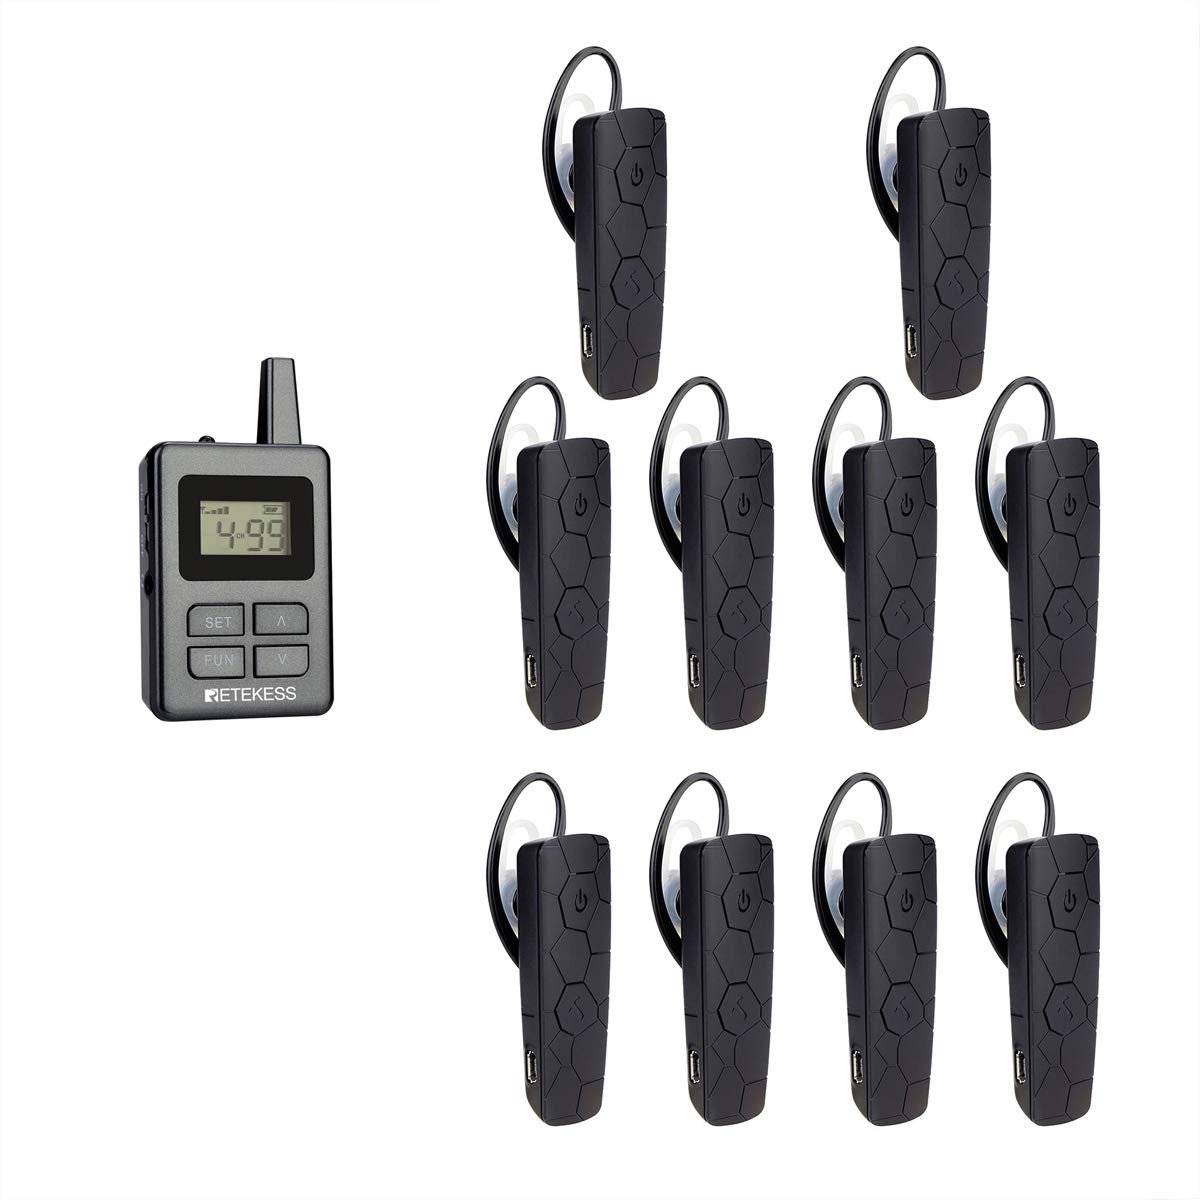 Retekess TT101 Wireless Tour Guide System Church Translation 99 Channel Long Standby Monitoring Mute Switch for Church 1 Transmitter 5 Receivers